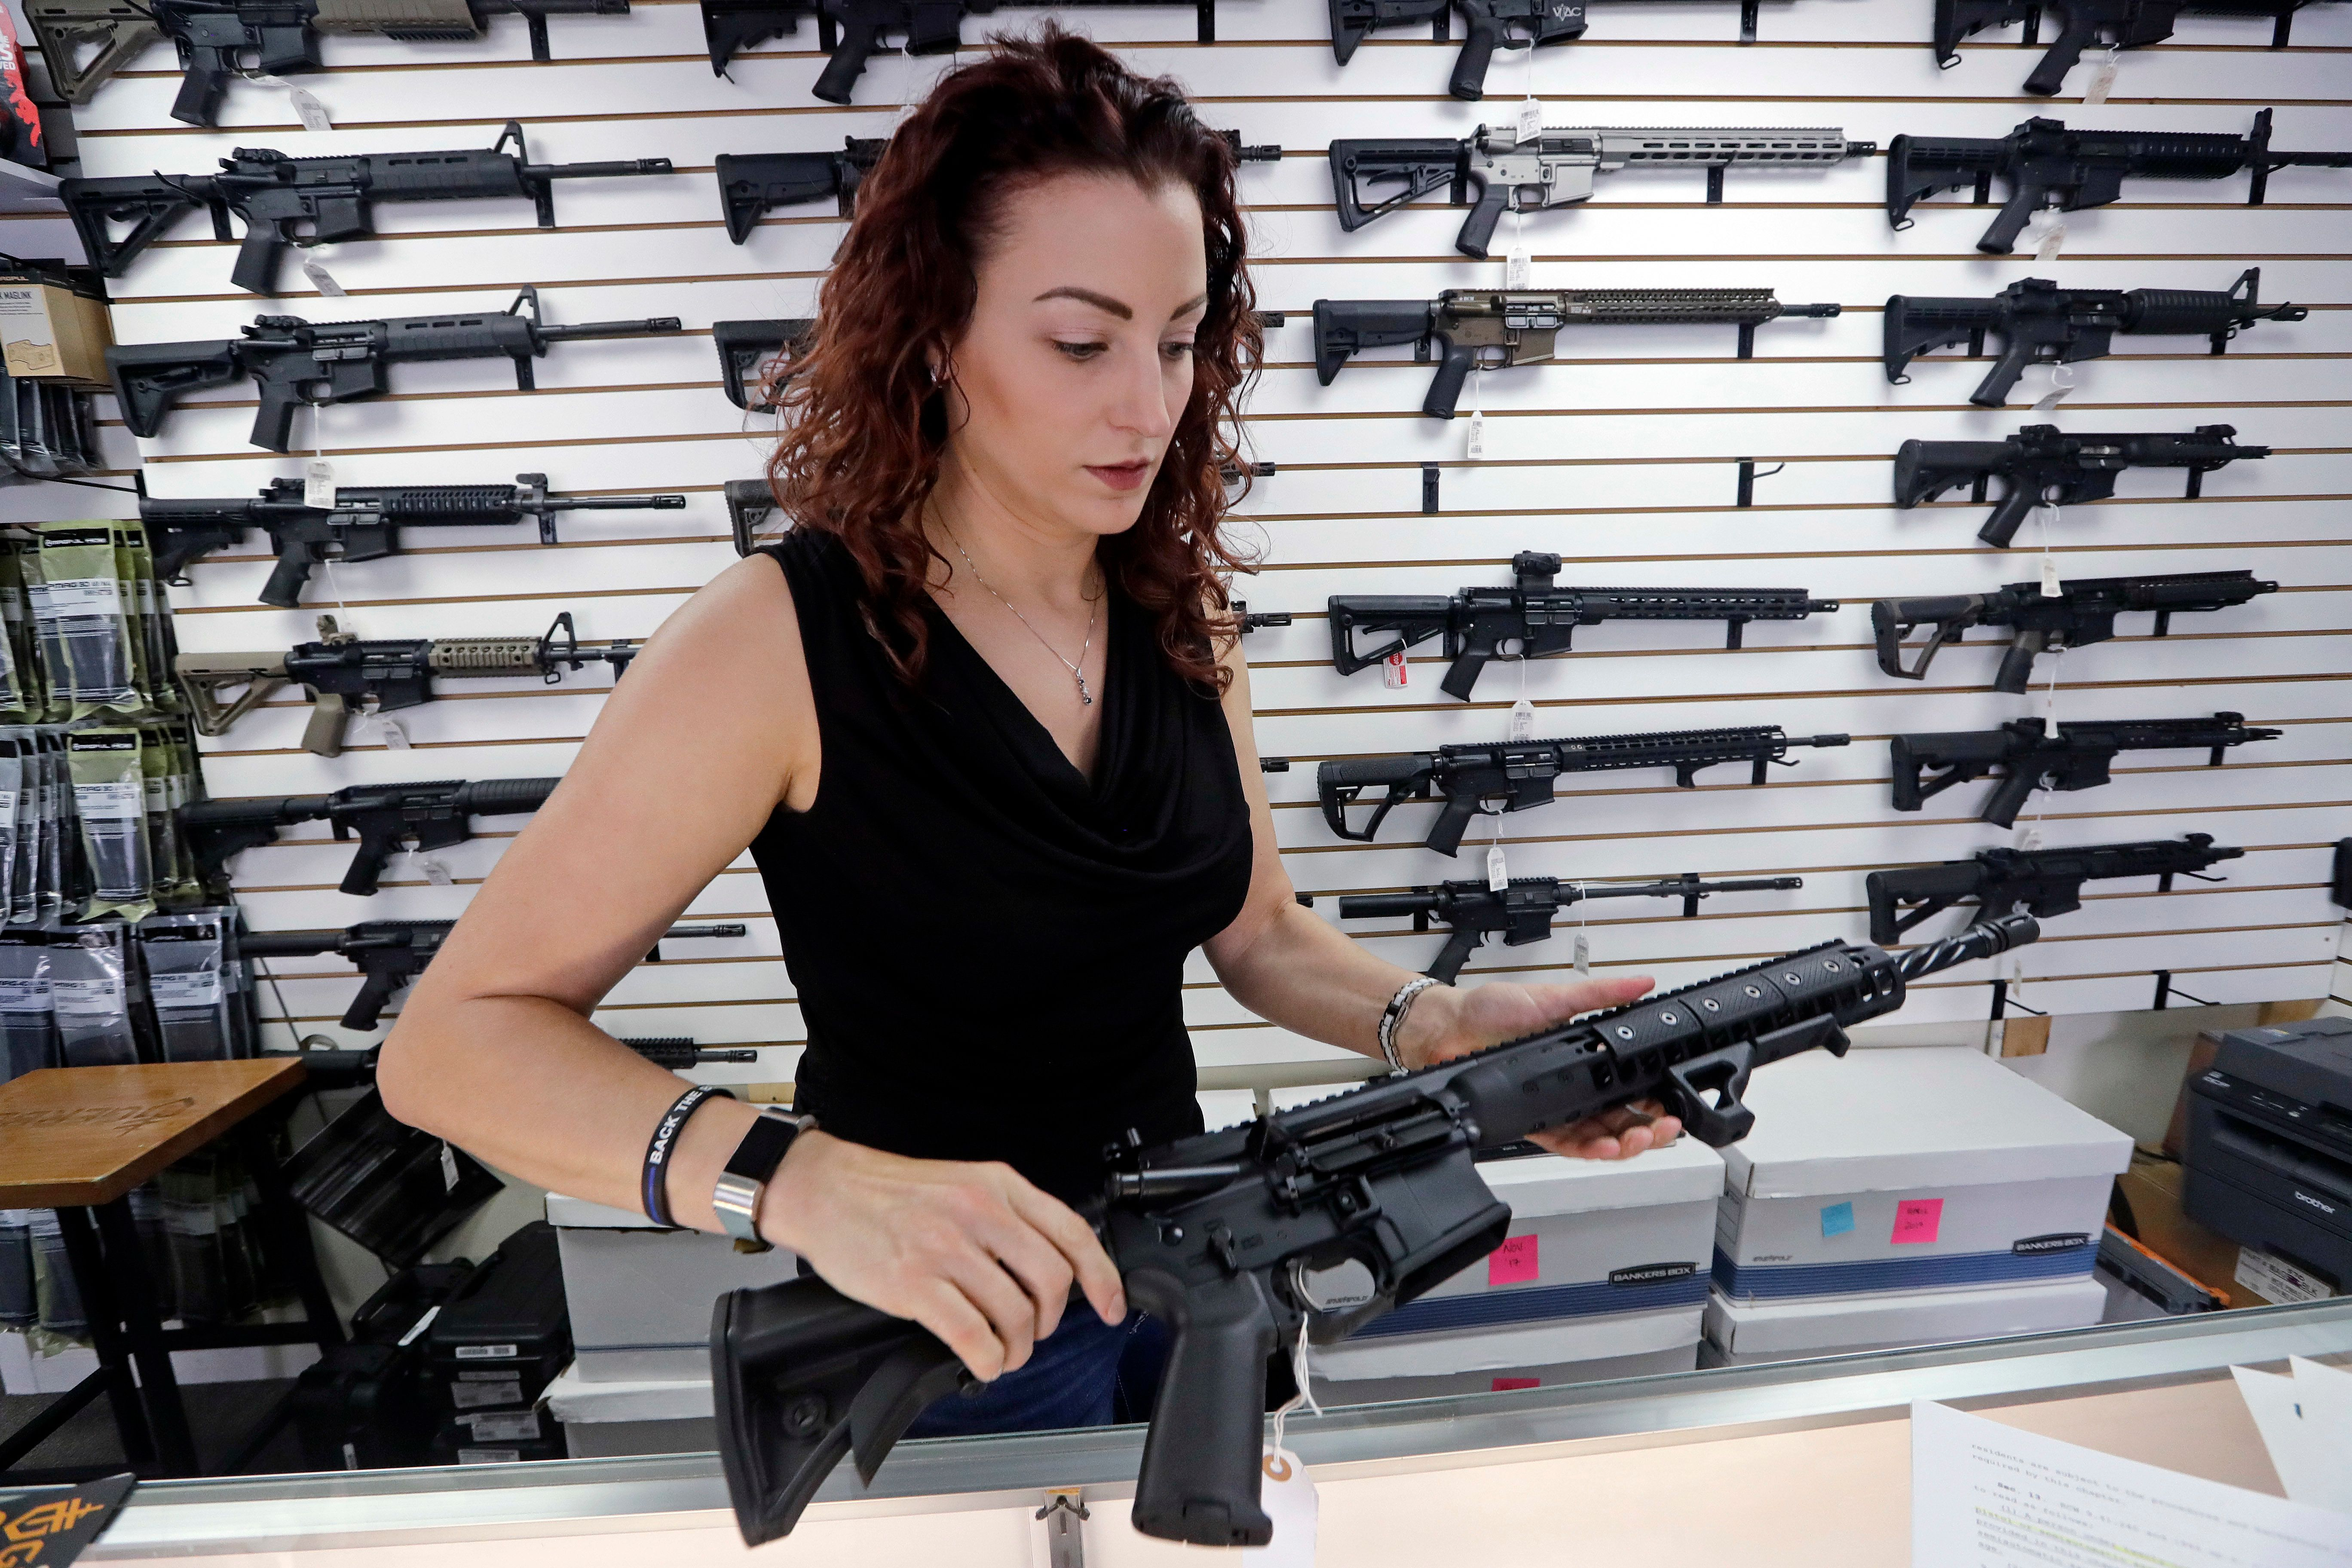 In this photo taken Tuesday, Oct. 2, 2018, gun shop owner Tiffany Teasdale holds a semi-automatic rifle as she talks about a gun initiative on the upcoming ballot, in Lynnwood, Wash. Voters in Washington state will decide the fate of an initiative that seeks to curb gun violence by toughening background checks for people buying semi-automatic rifles, increasing the age limit to 21 for buyers of those guns and requiring safe storage of all firearms. (AP Photo/Elaine Thompson)